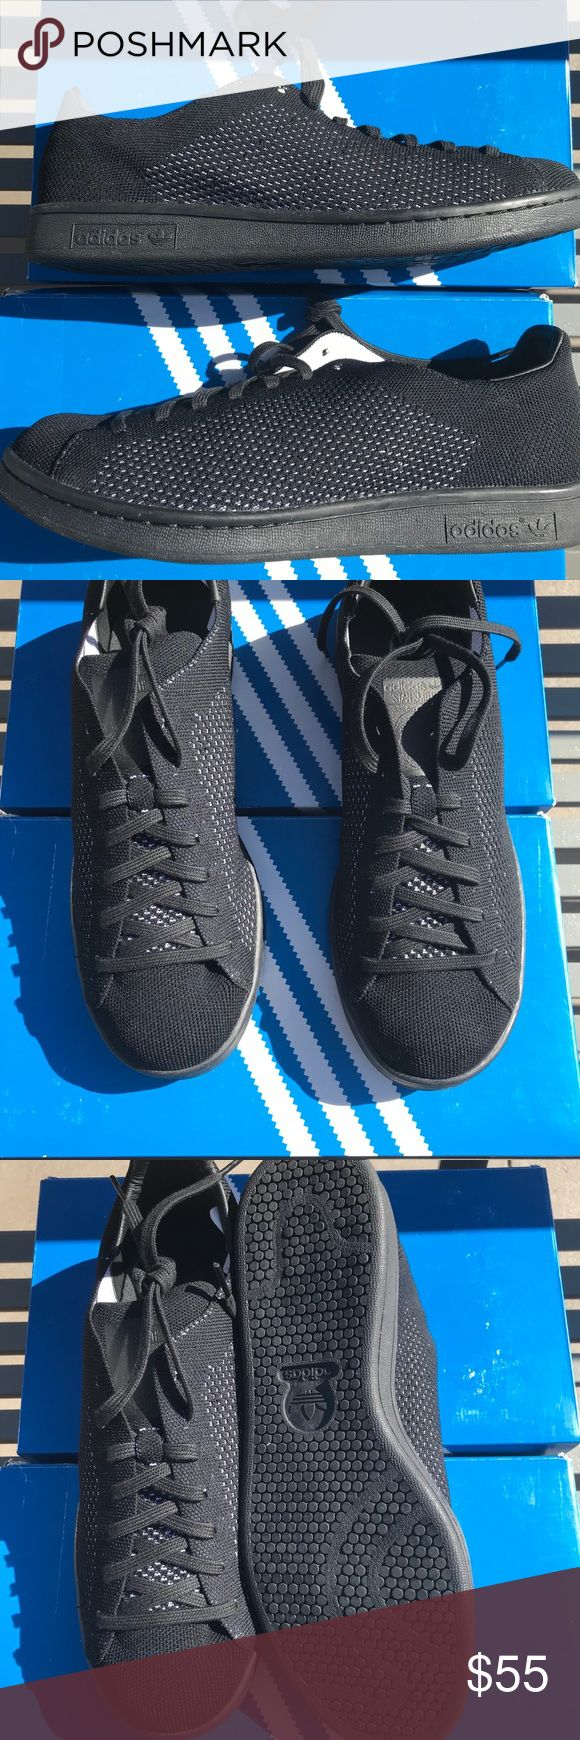 NWT adidas Stan Smith Prime Knits Black NWT adidas Stan Smith Prime Knits Black.  Adidas Prime Knits fun big. These shoes wear like a 10/10.5 The actual size is 9.5 adidas Shoes Sneakers